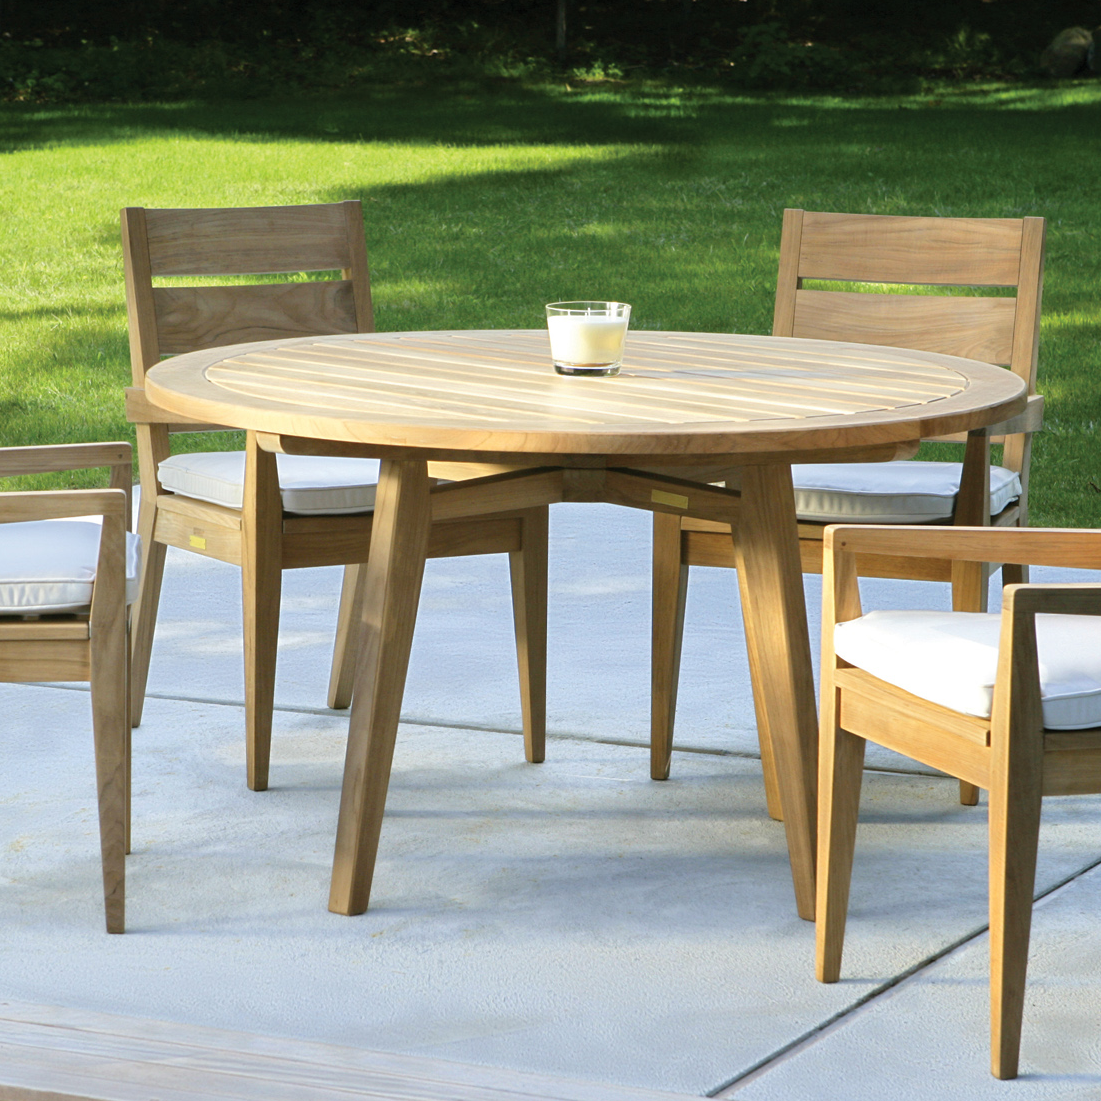 Garden Table Glass Table Florence 120x70cm Metal Table Garden Furniture Glass Table Silver